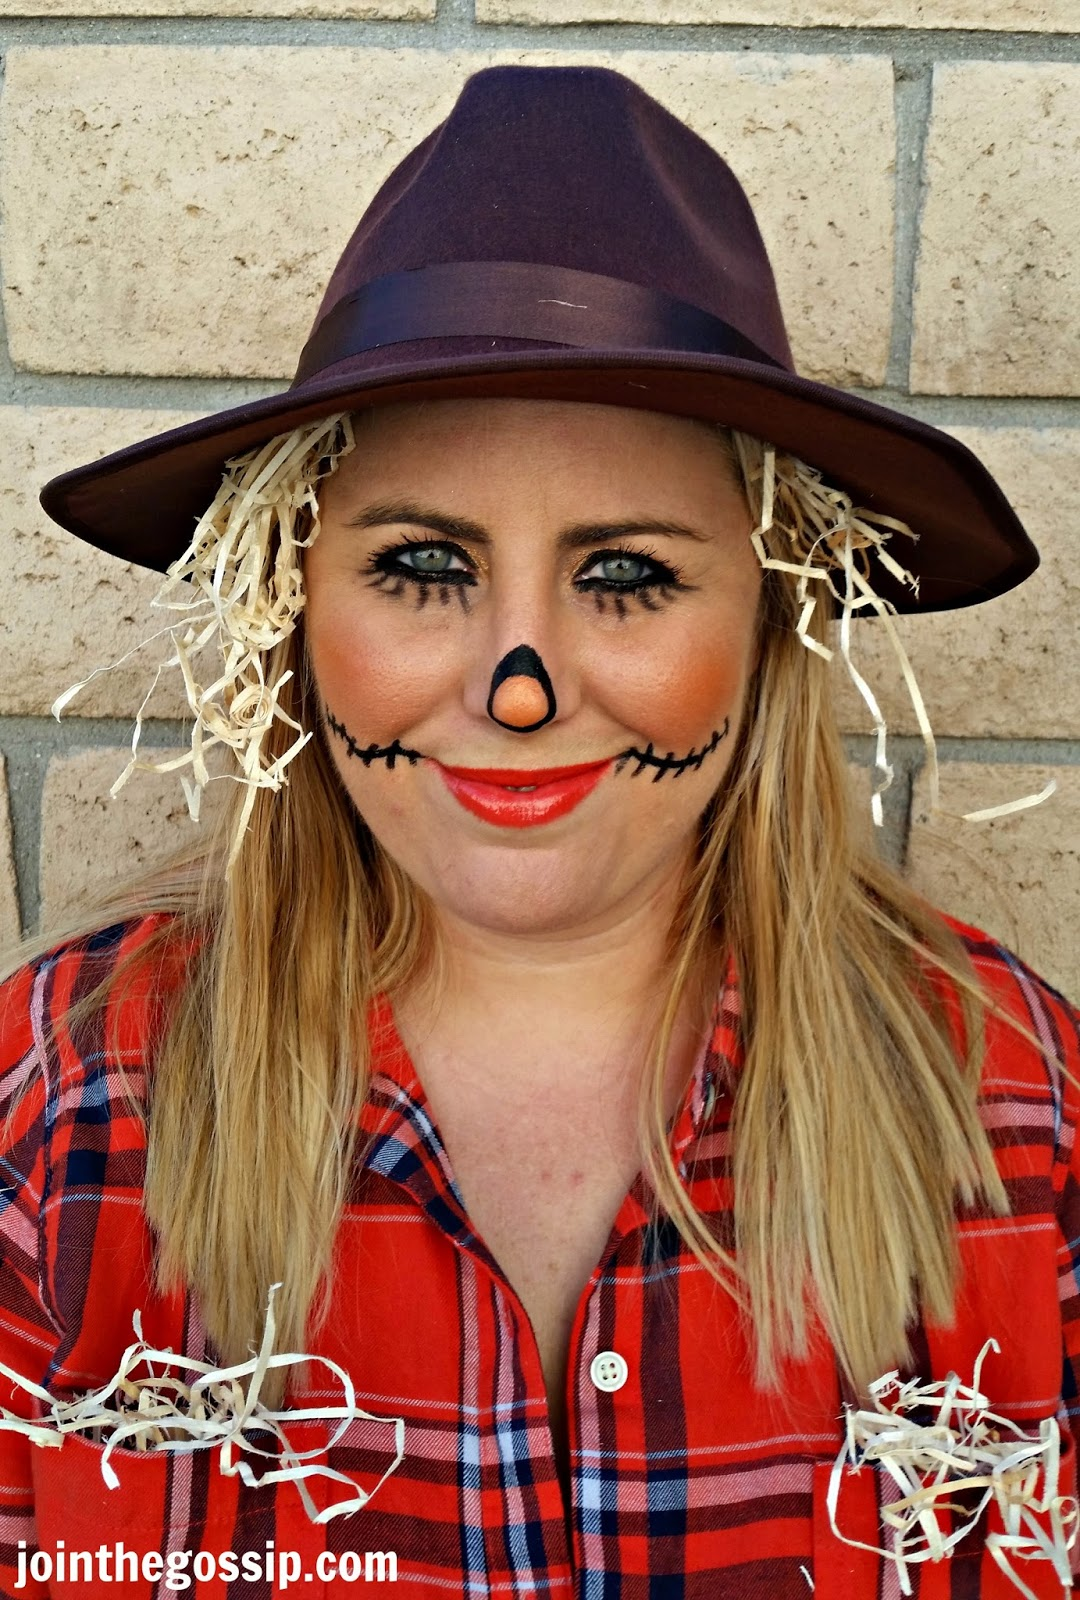 Join The Gossip: Scarecrow Halloween Costume